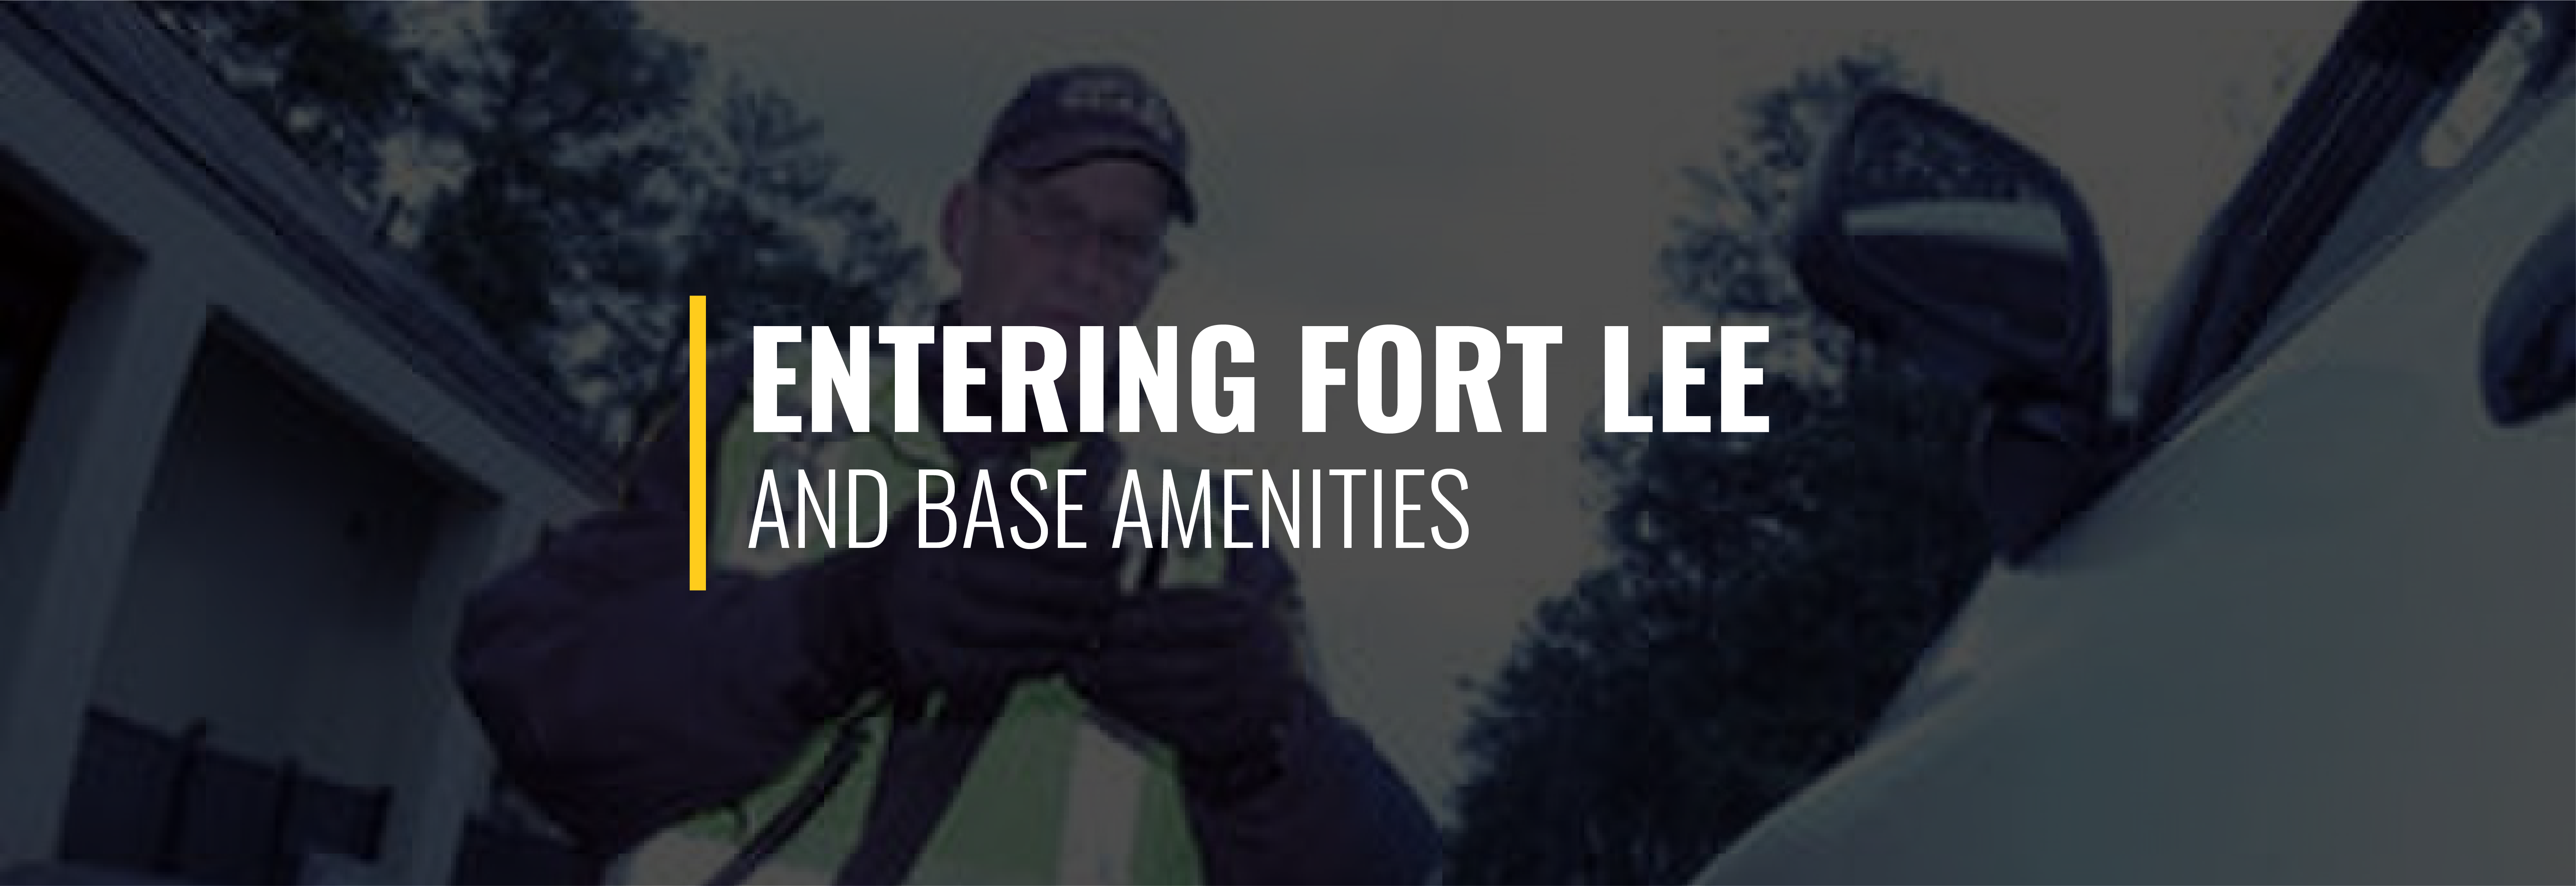 Entering Fort Lee and Base Amenities